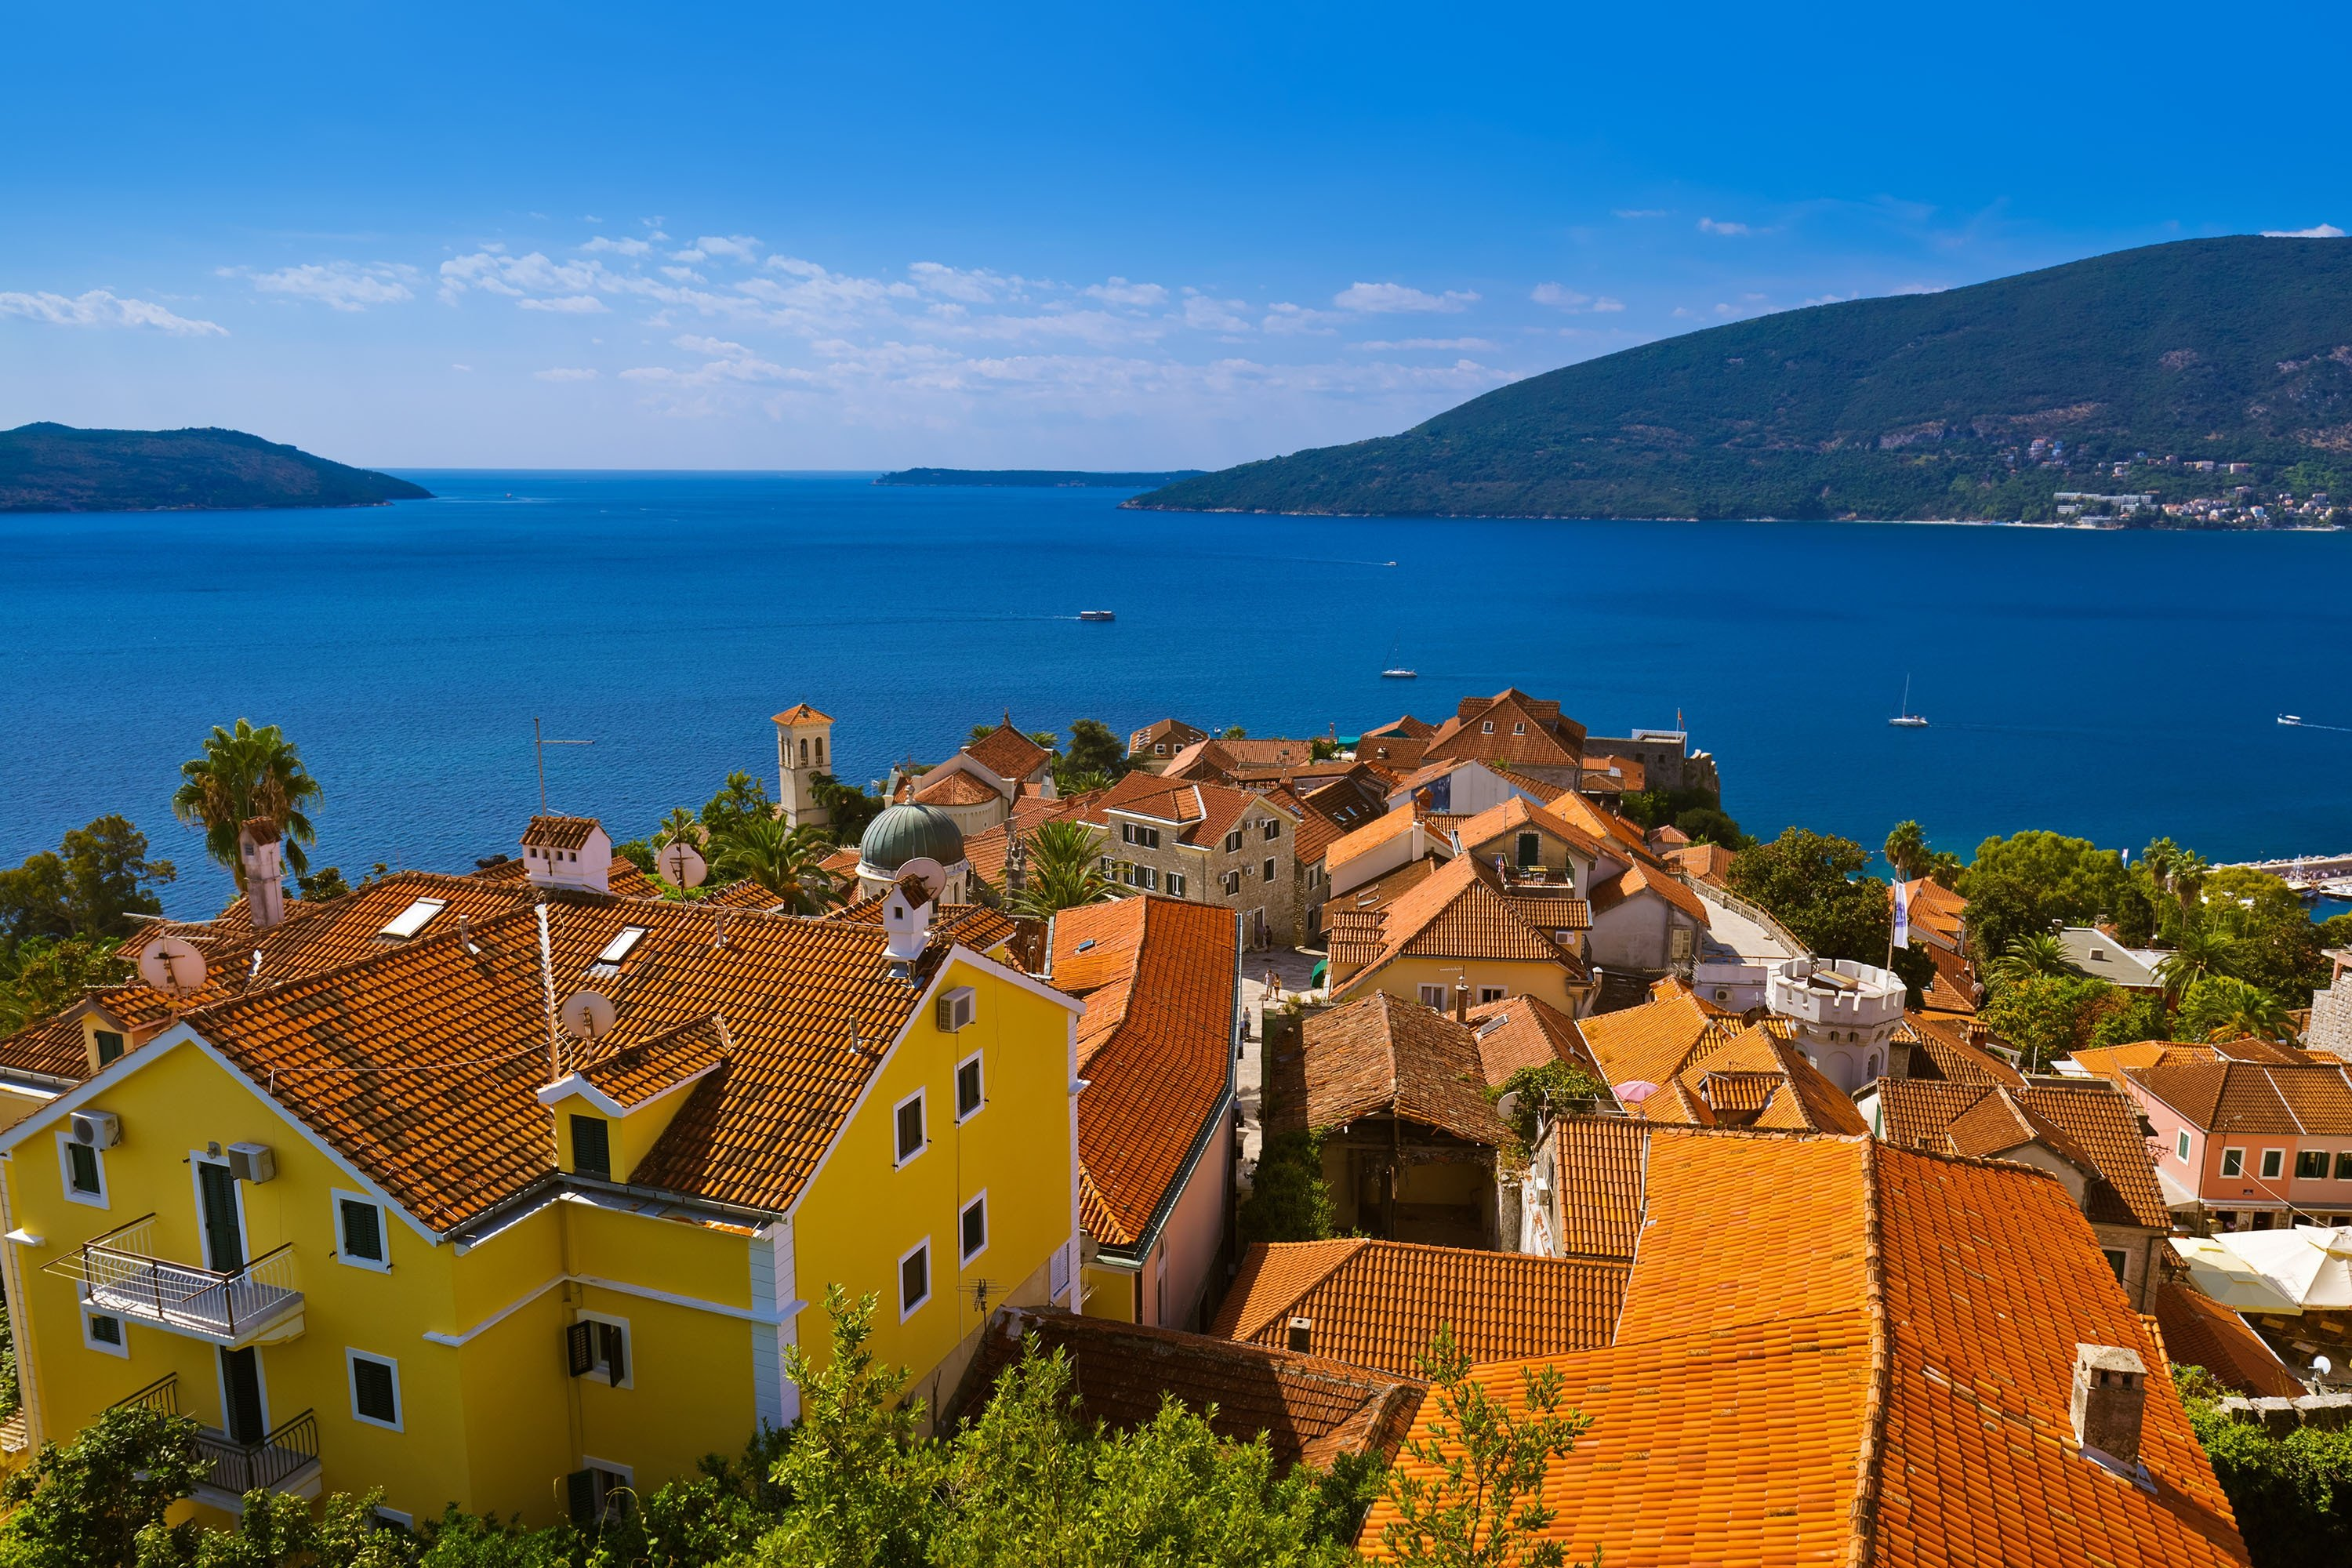 Herceg Novi's historical architecture speckles the landscape in front of the Bay of Kotor, Montenegro. (Shutterstock Photo)